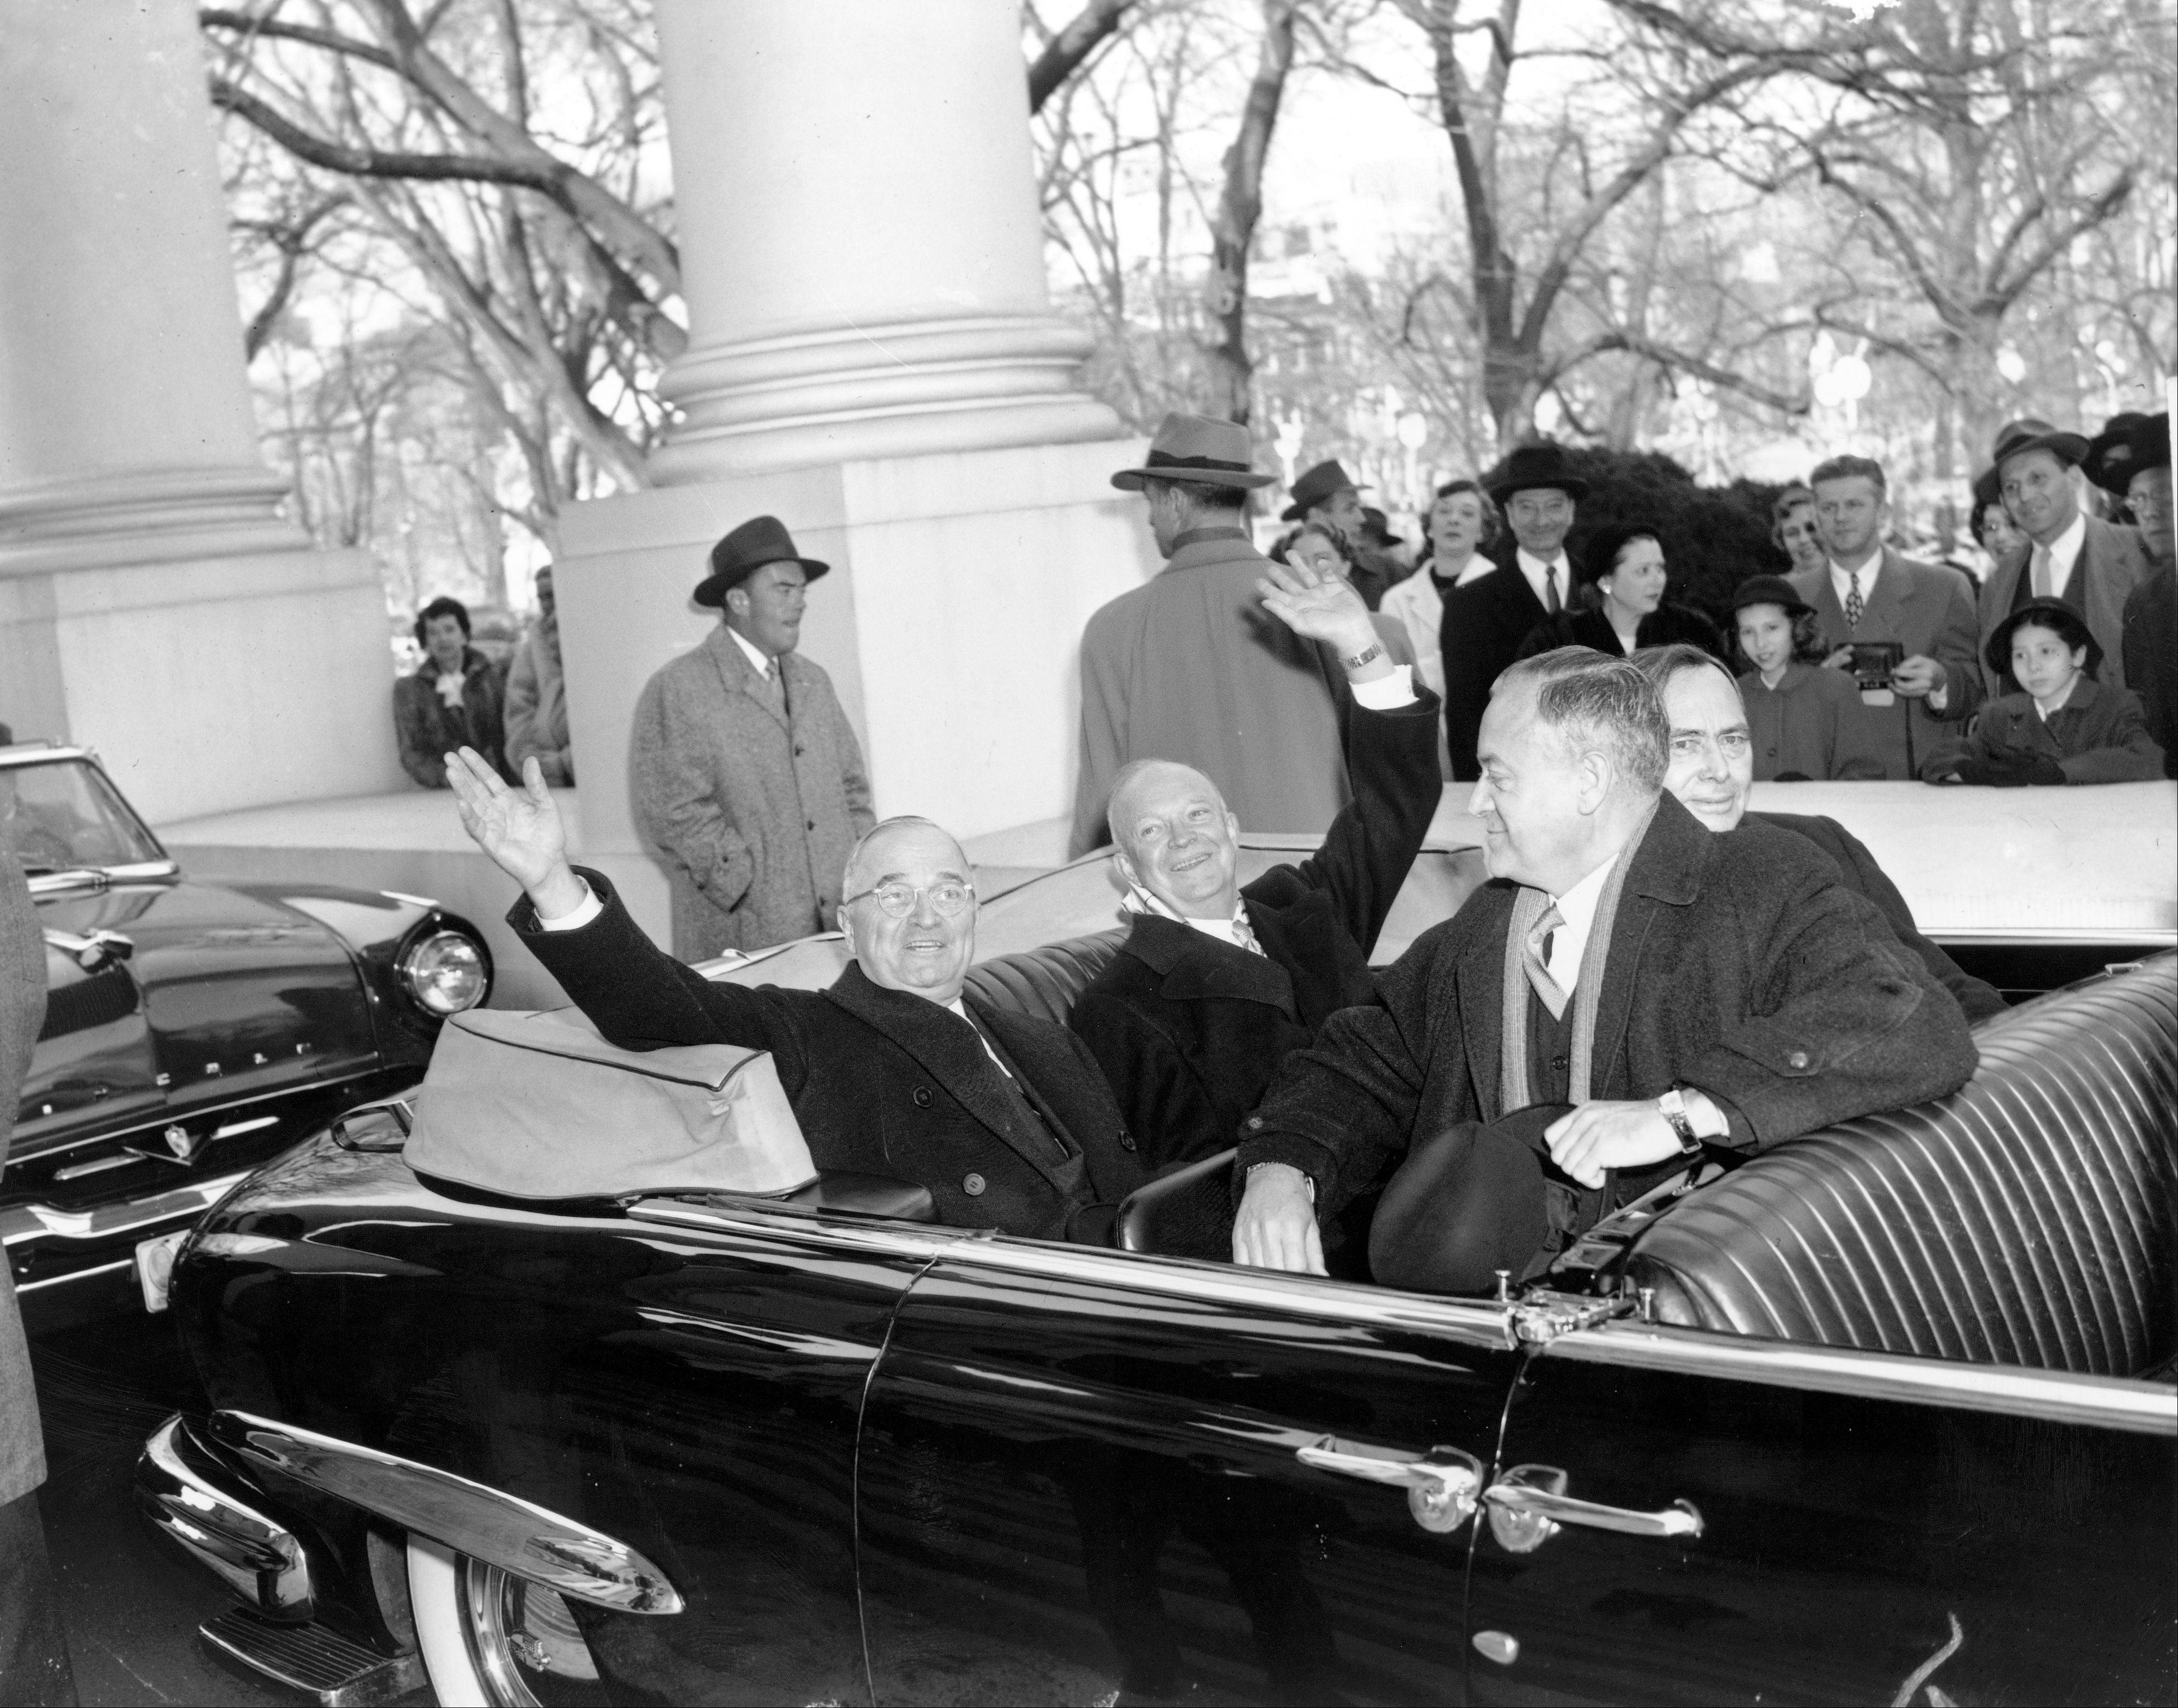 With smiles and a wave, U.S. President Harry Truman, left, and his successor, president-elect Dwight D. Eisenhower, leave the White House in an open car for inauguration ceremonies in Washington, D.C. on Jan. 20, 1953. Sitting in the front is Sen. Styles Bridges of New Hampshire, and behind him is House Speaker Joe Martin.